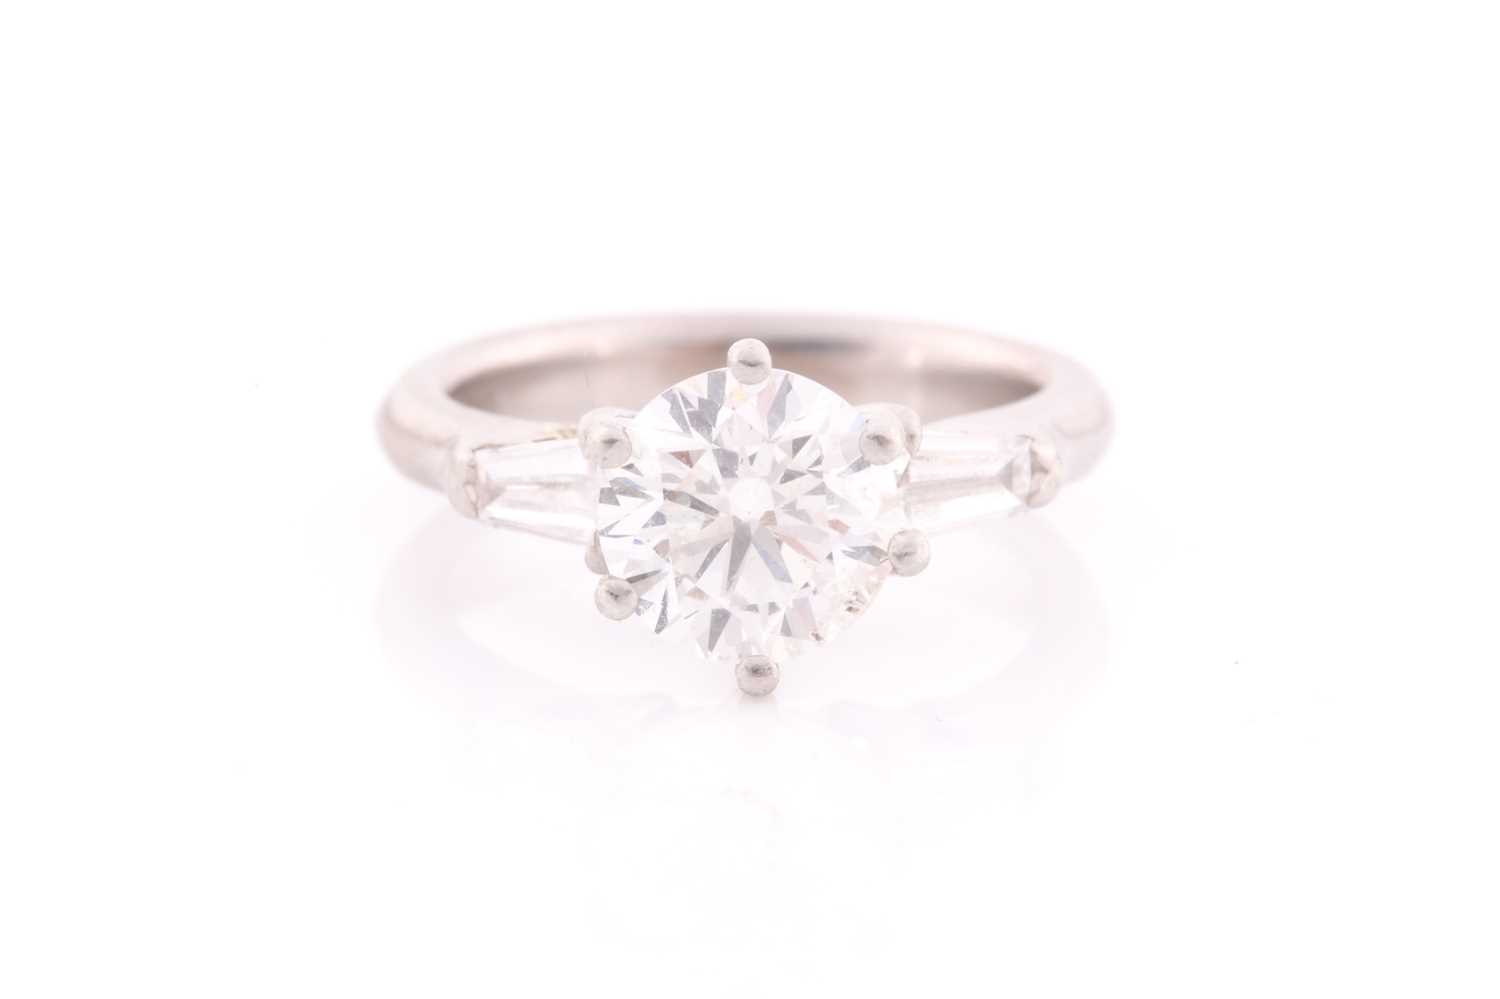 A platinum and diamond ring, set with a round brilliant-cut diamond of approximately 1.50 carats,